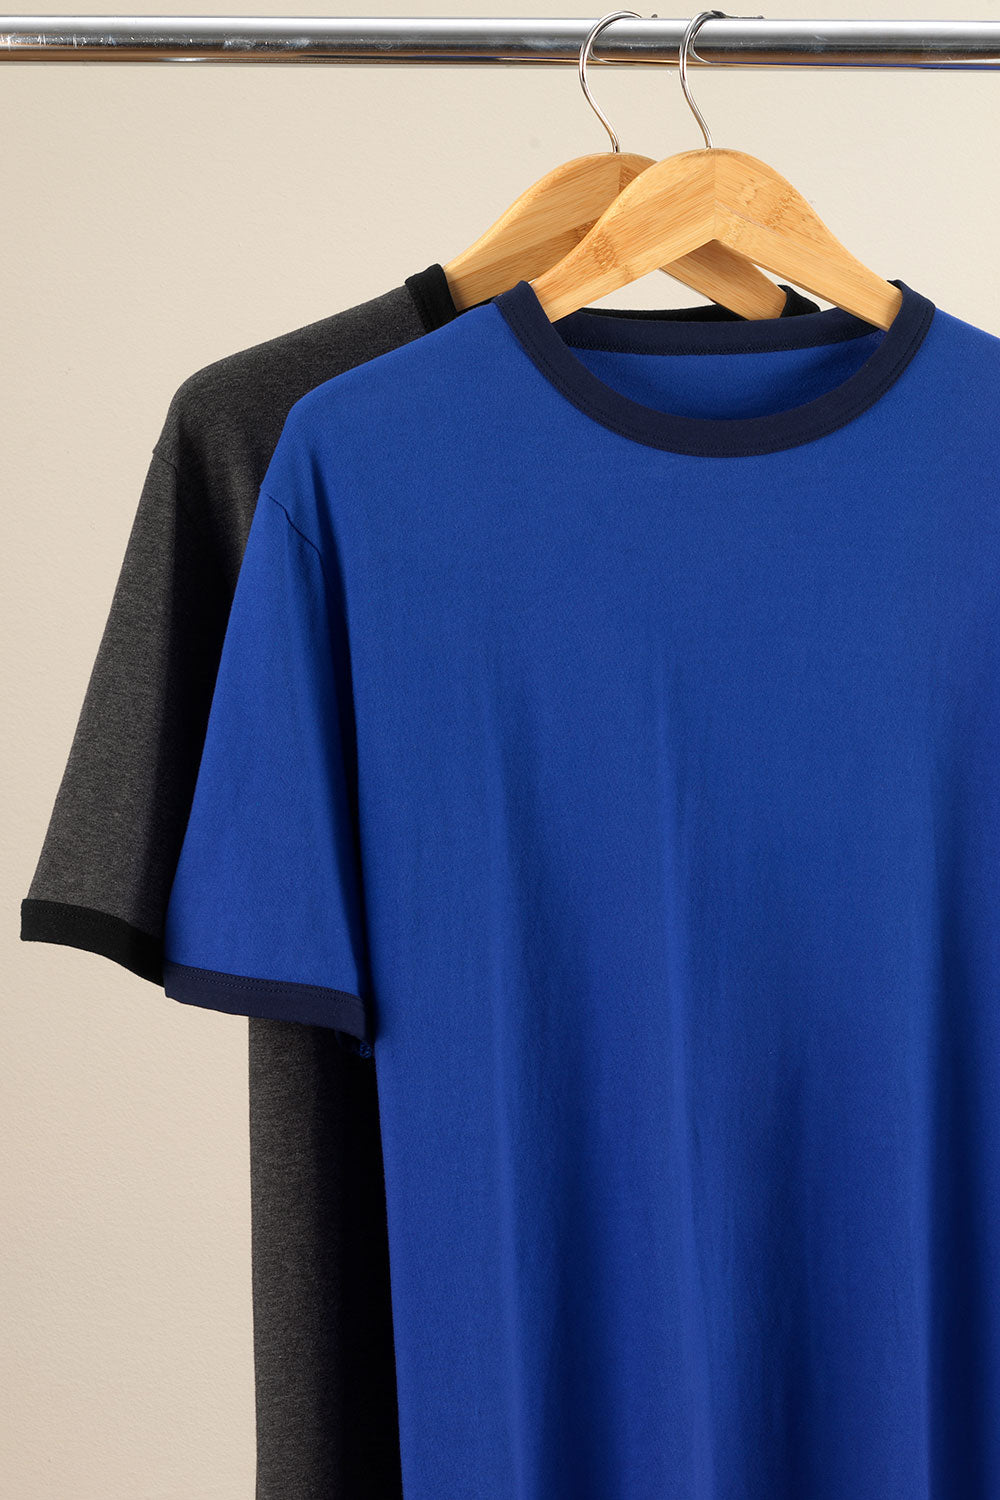 fair-indigo-mens-fair-trade-organic-ringer-tee